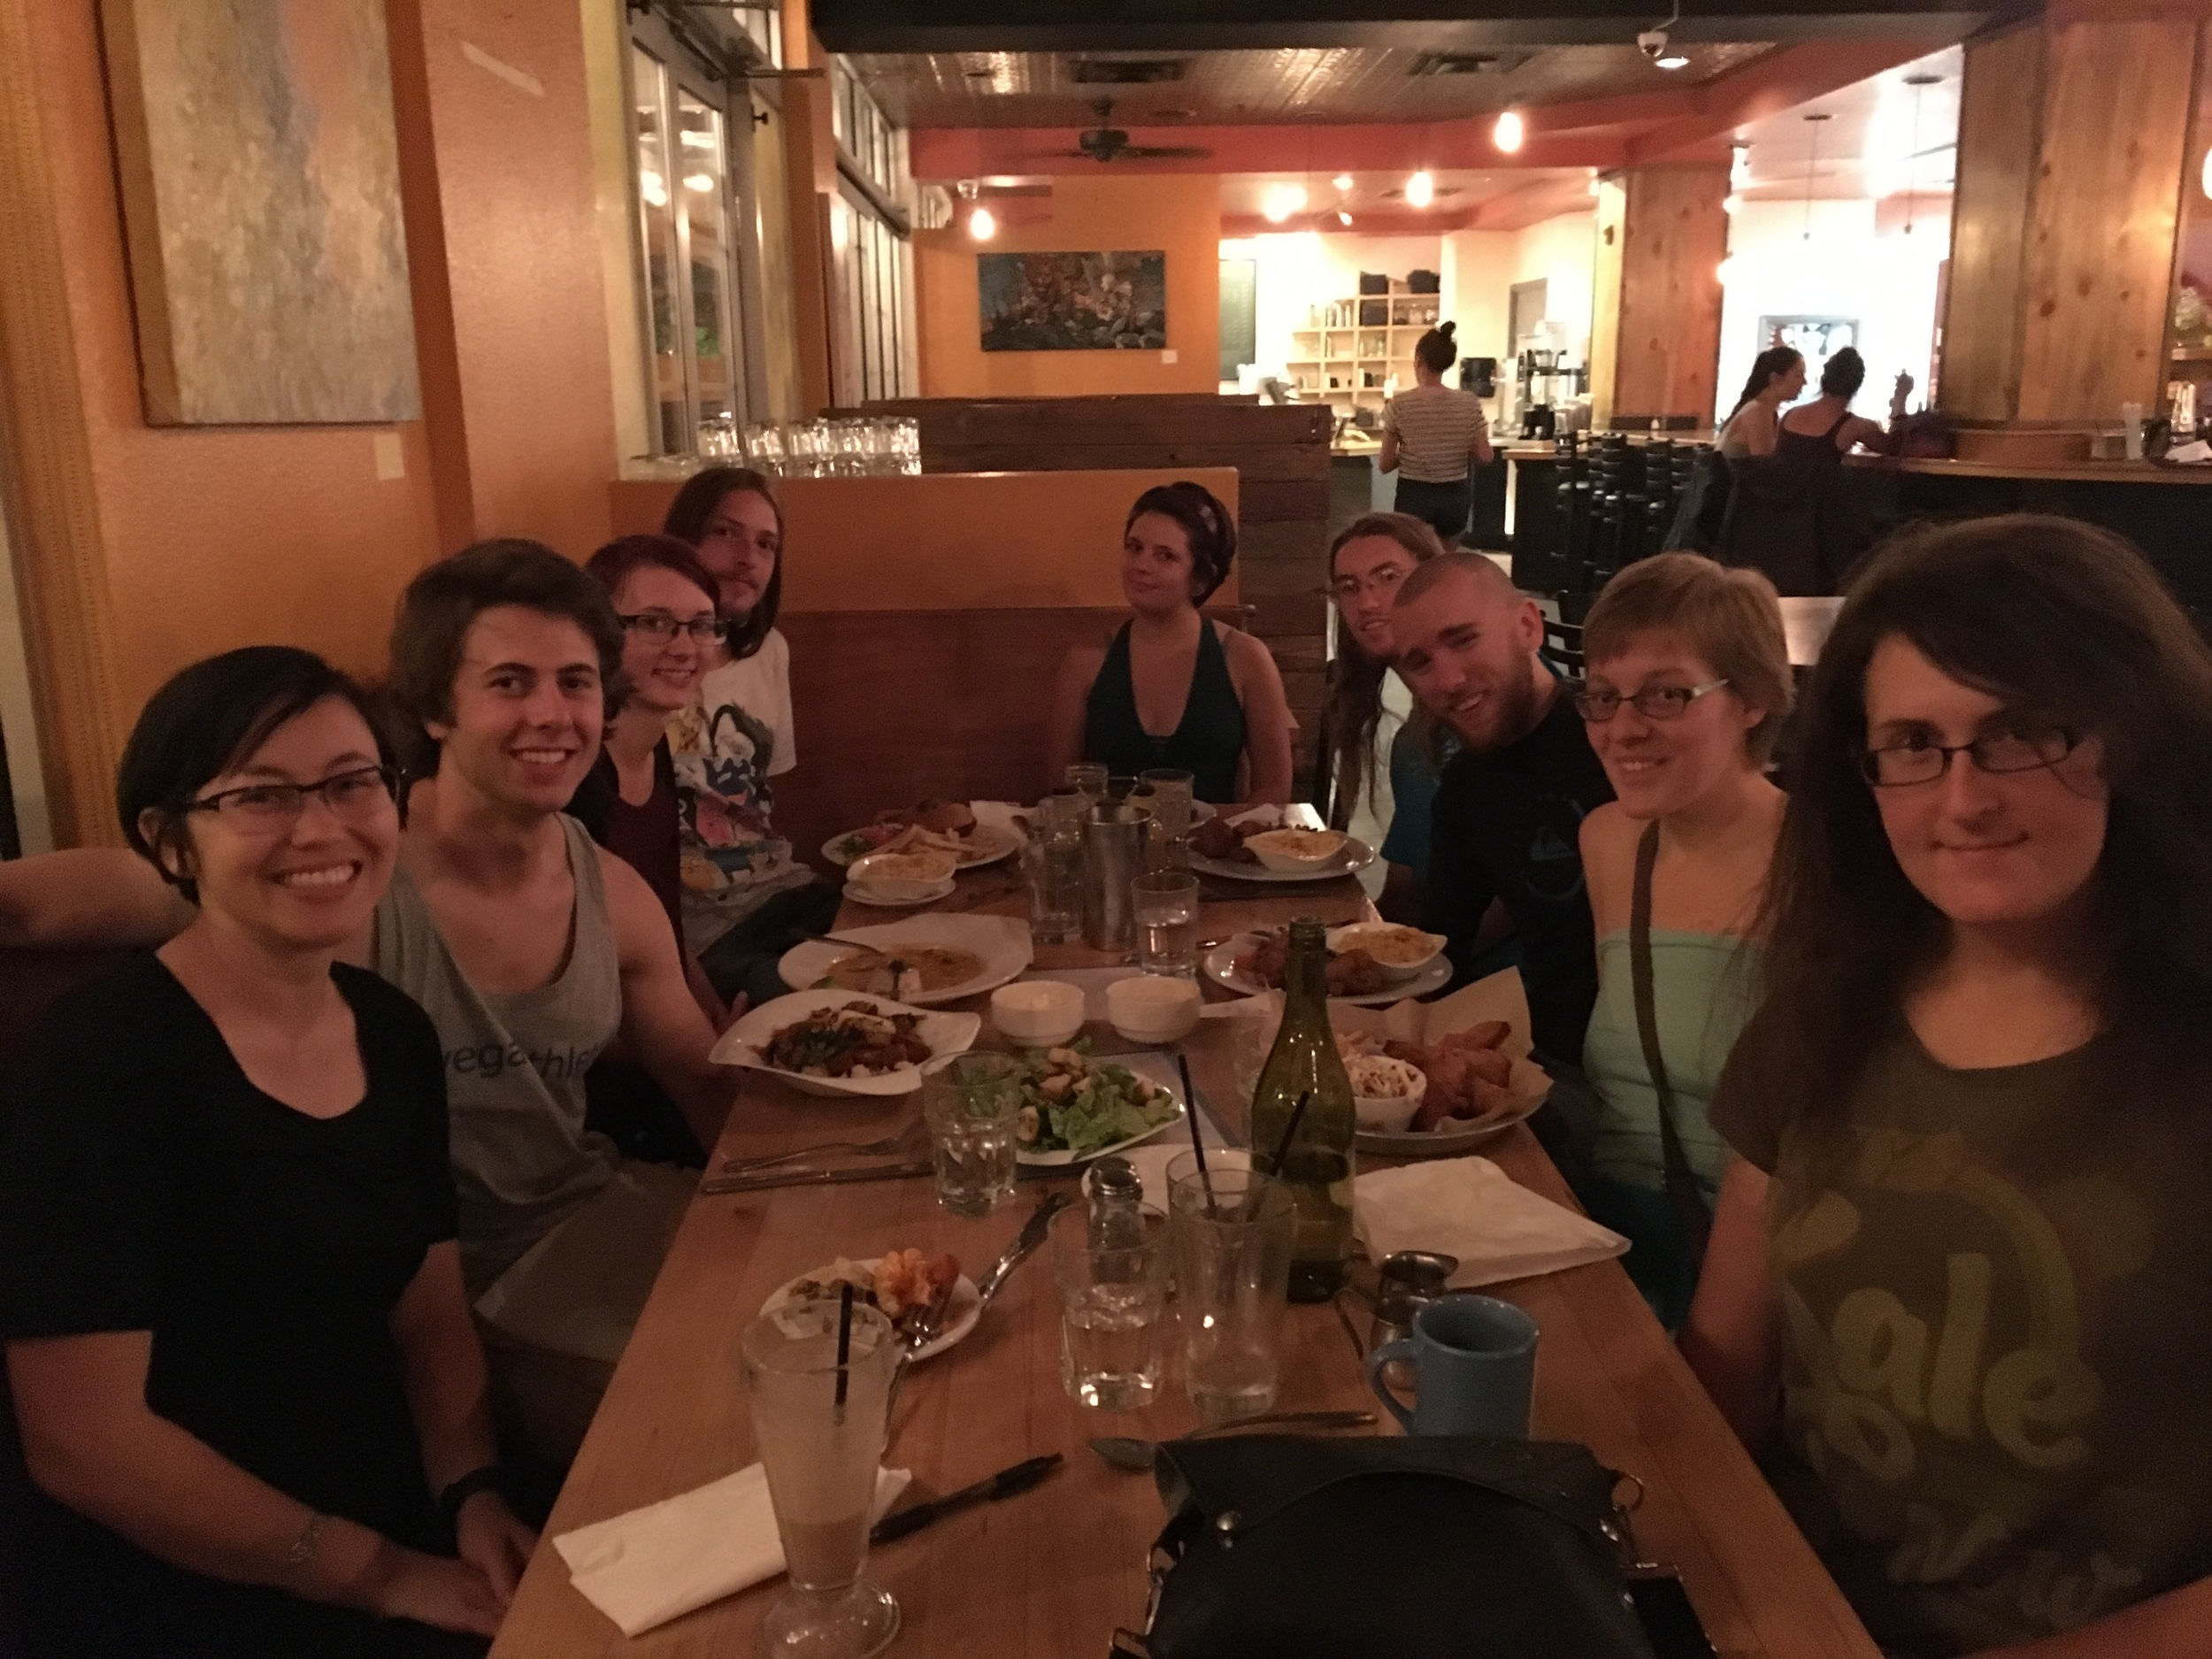 Everyone enjoys a vegan meal at Watercourse after the activist were released from jail